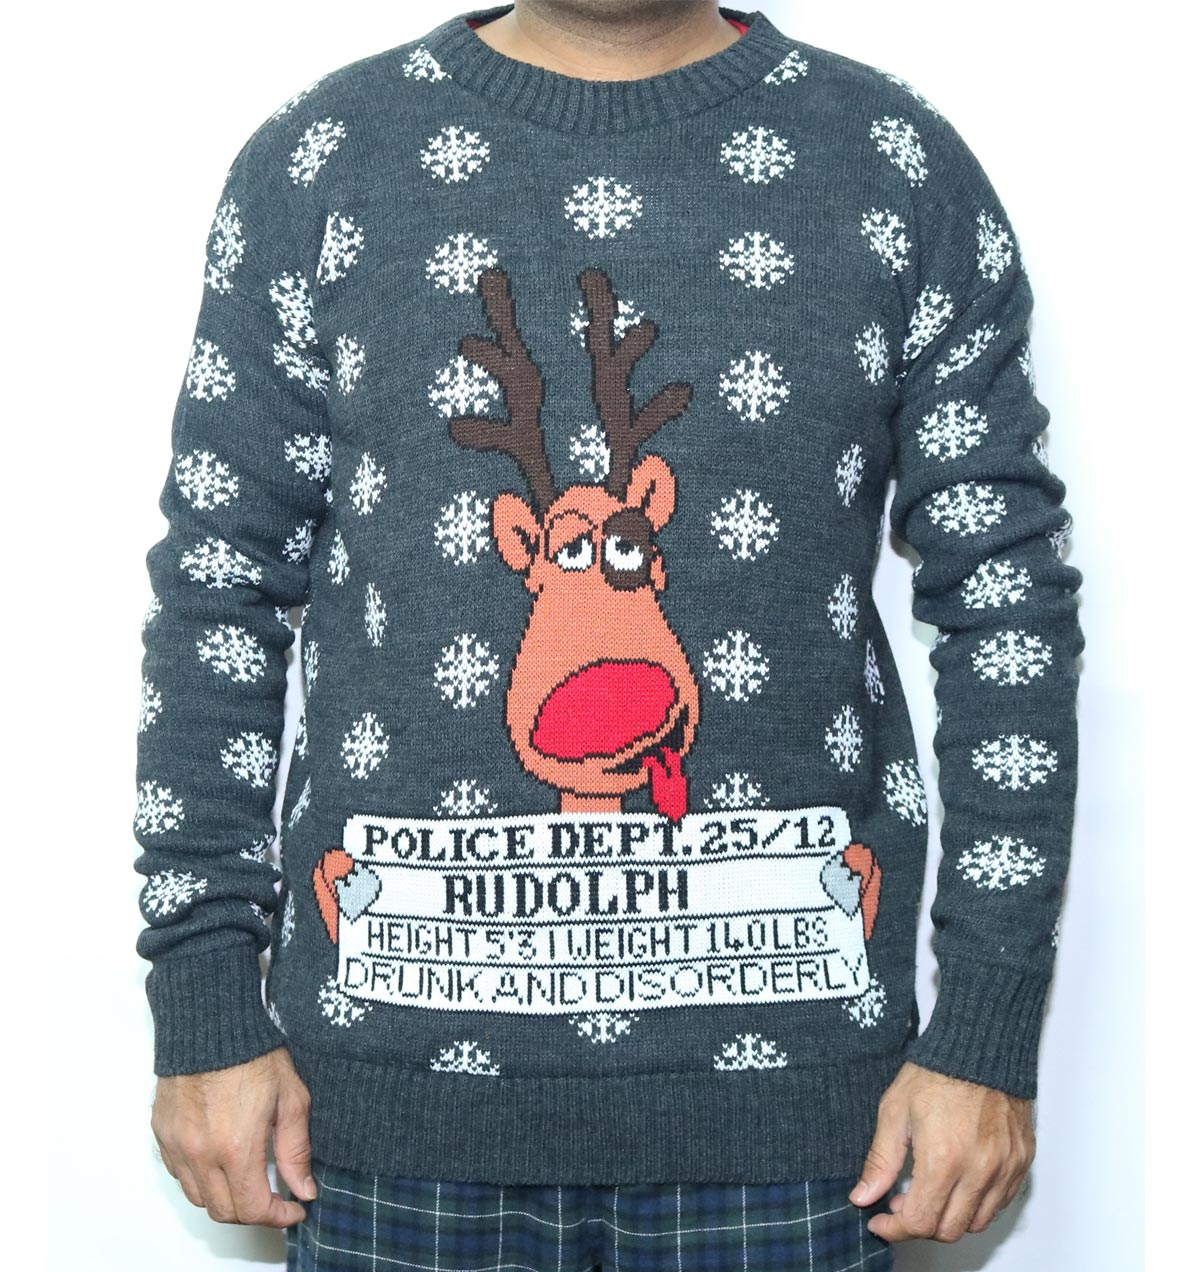 Drunk Jailed Rudolph Reindeer Christmas Sweater - Ugly Christmas ...